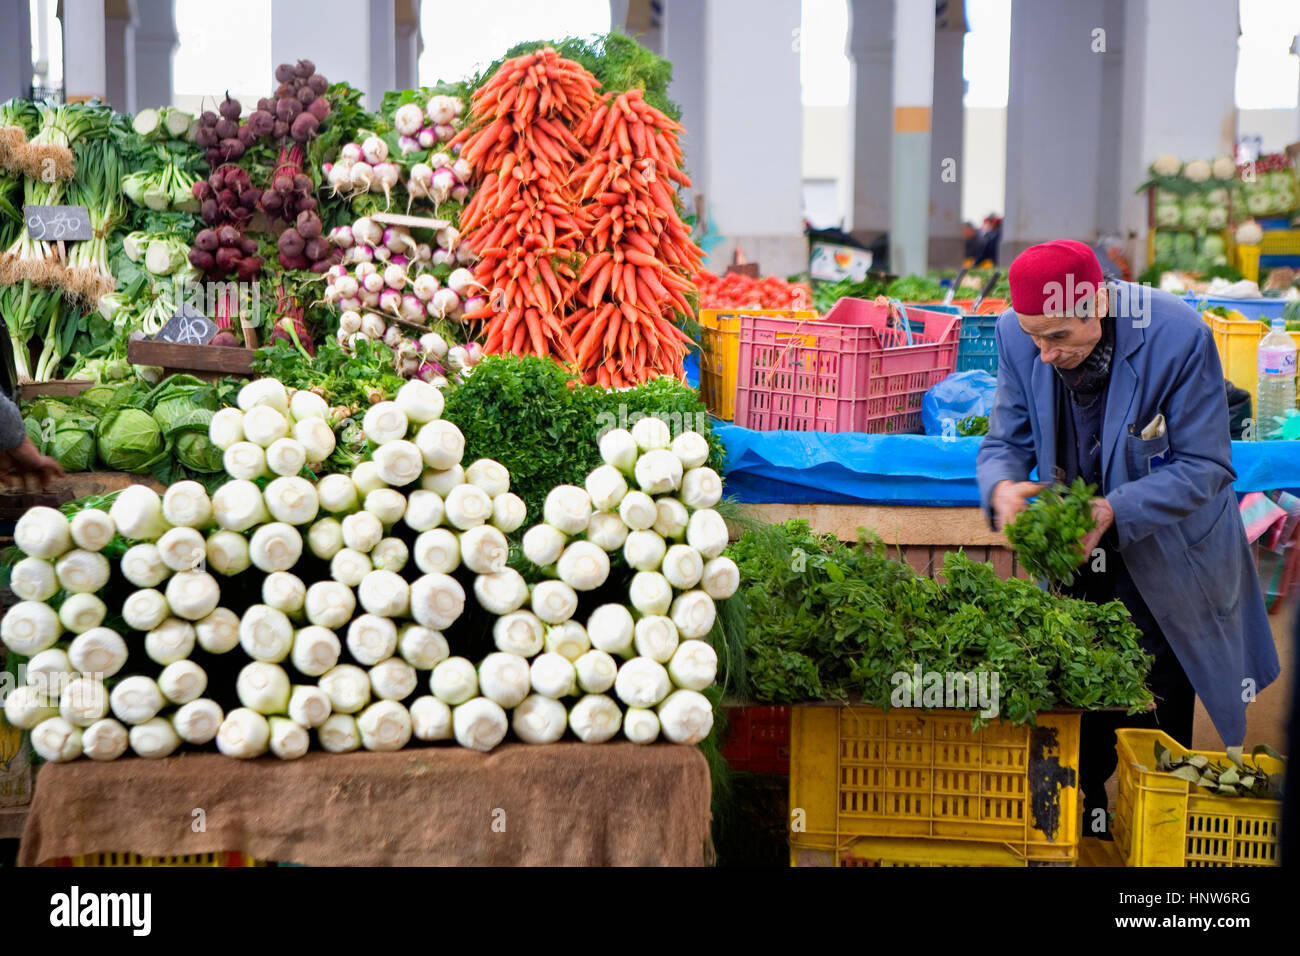 Tunisia: City of Tunis. Greengrocery, in Central Market - Stock Image